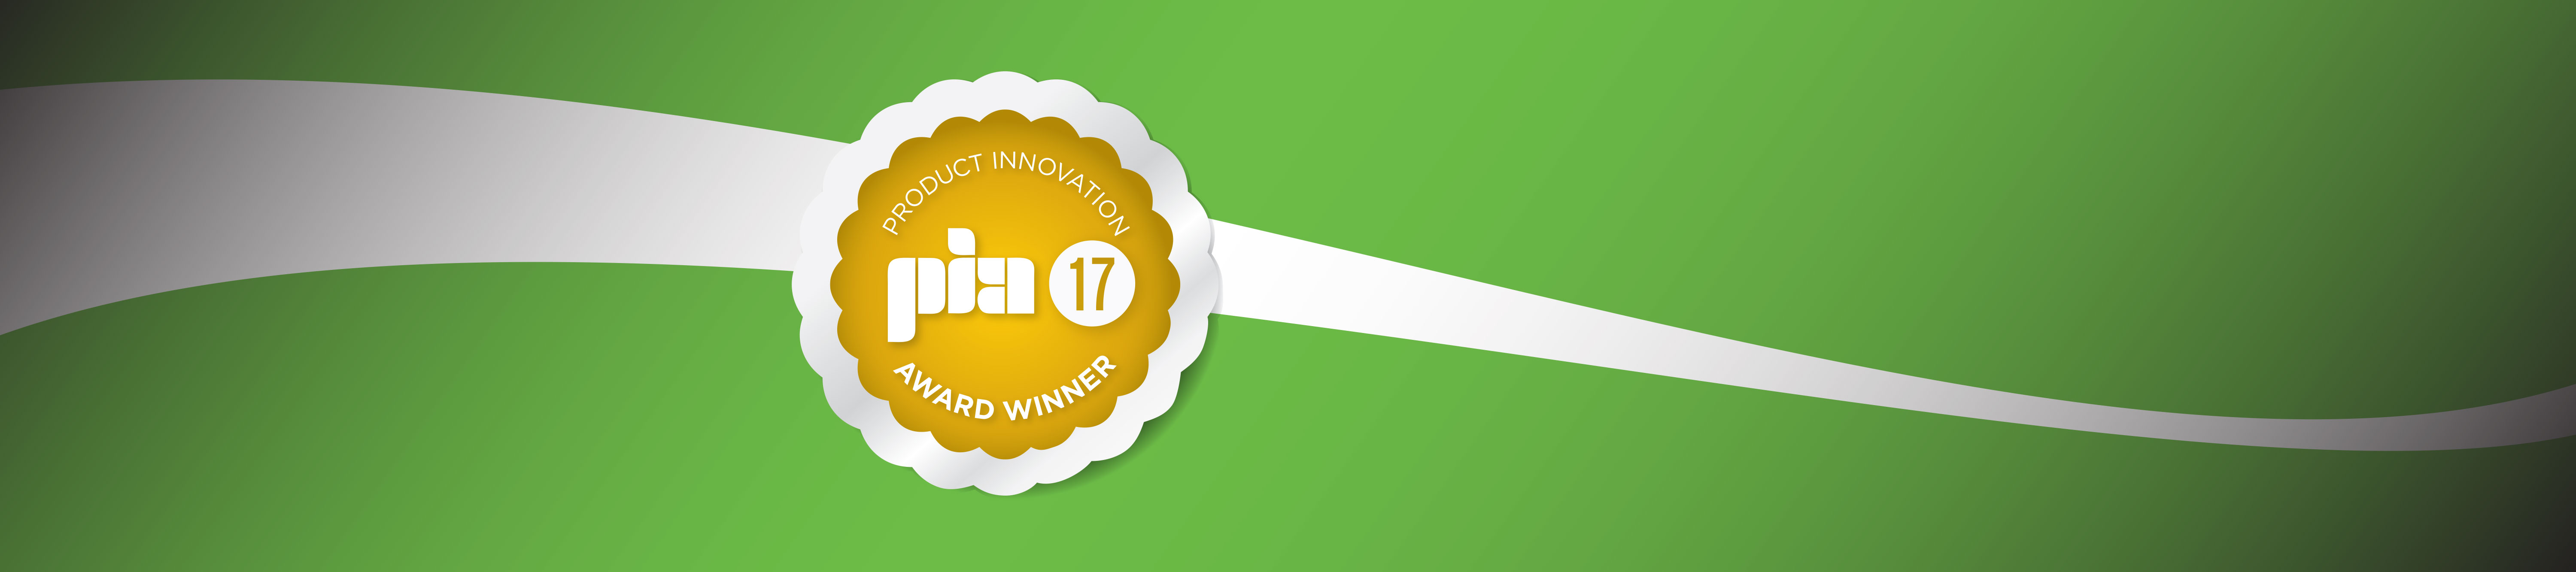 Illuminate your space led lighting solutions diode led winner of 3 awards arubaitofo Choice Image